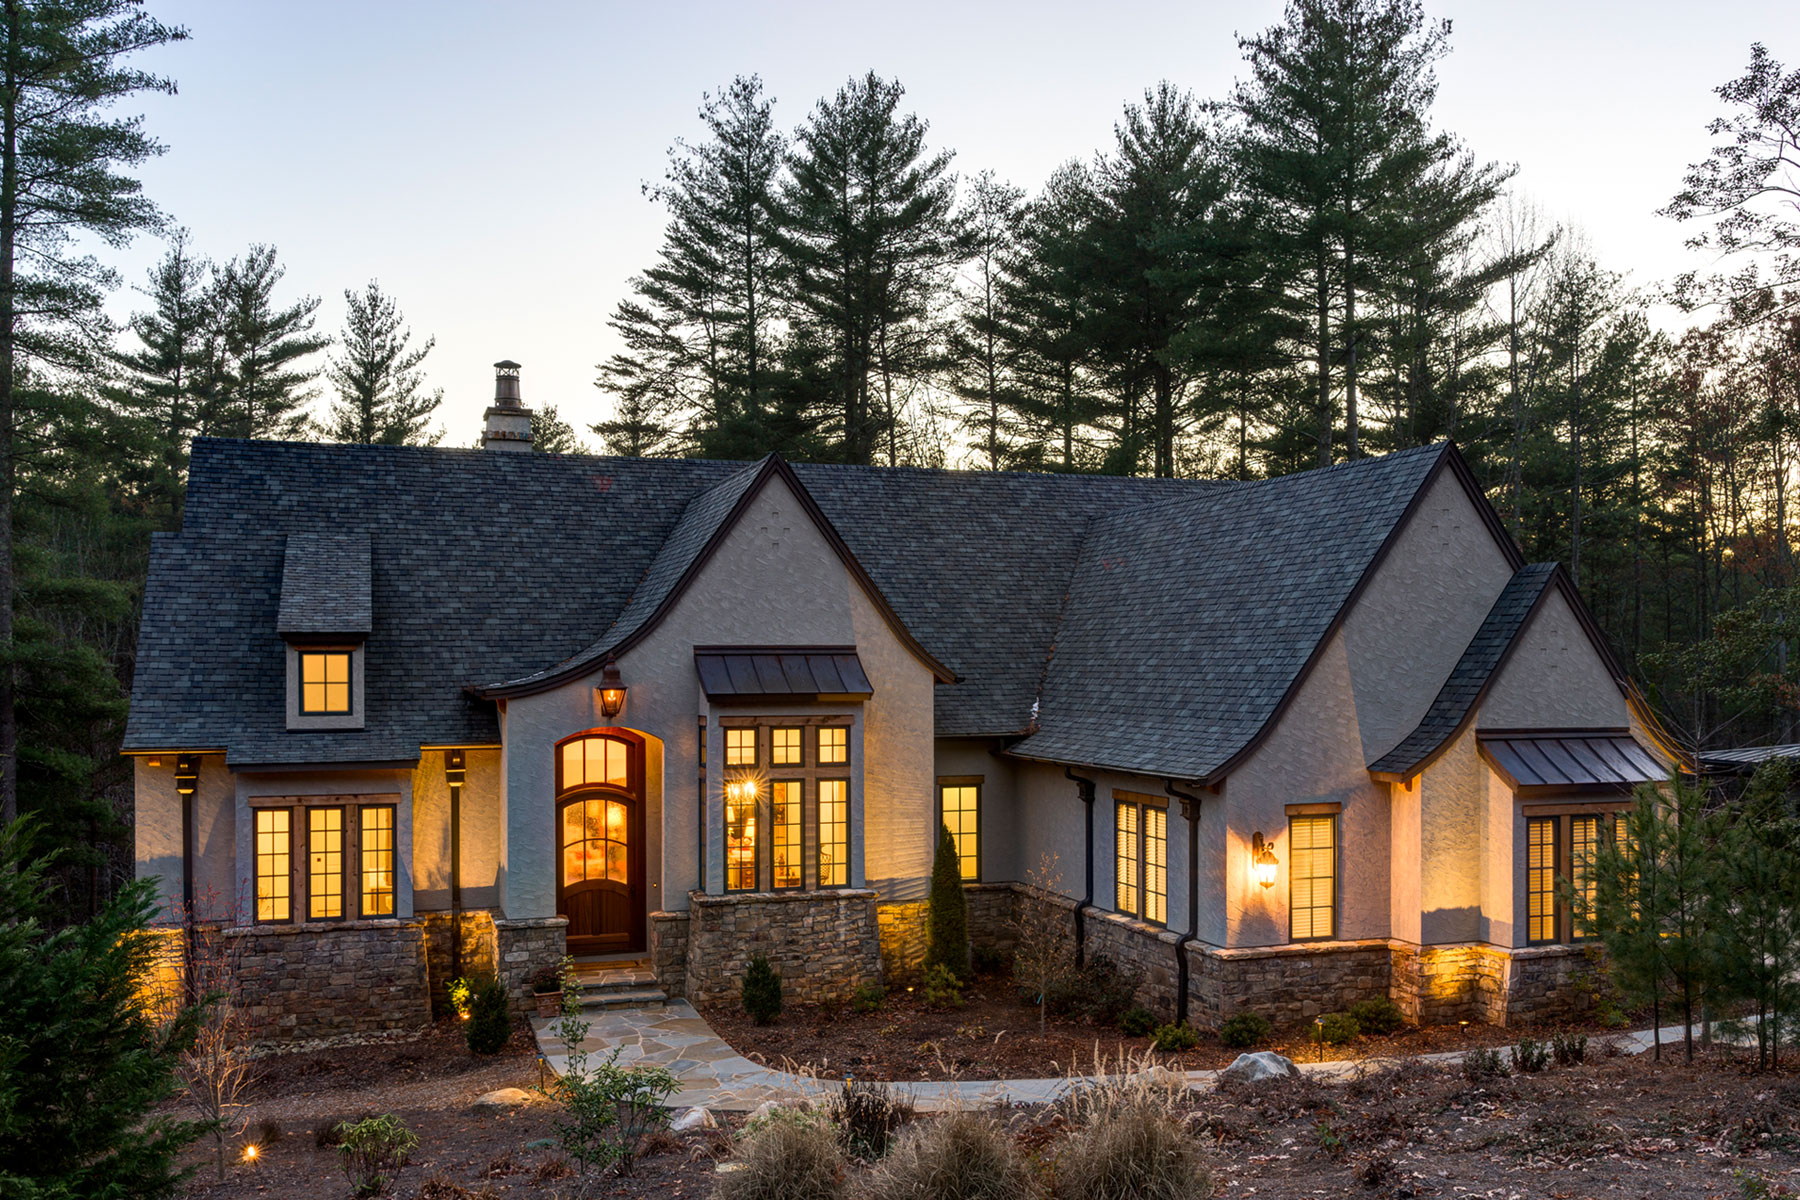 Custom home architect in Western North Carolina